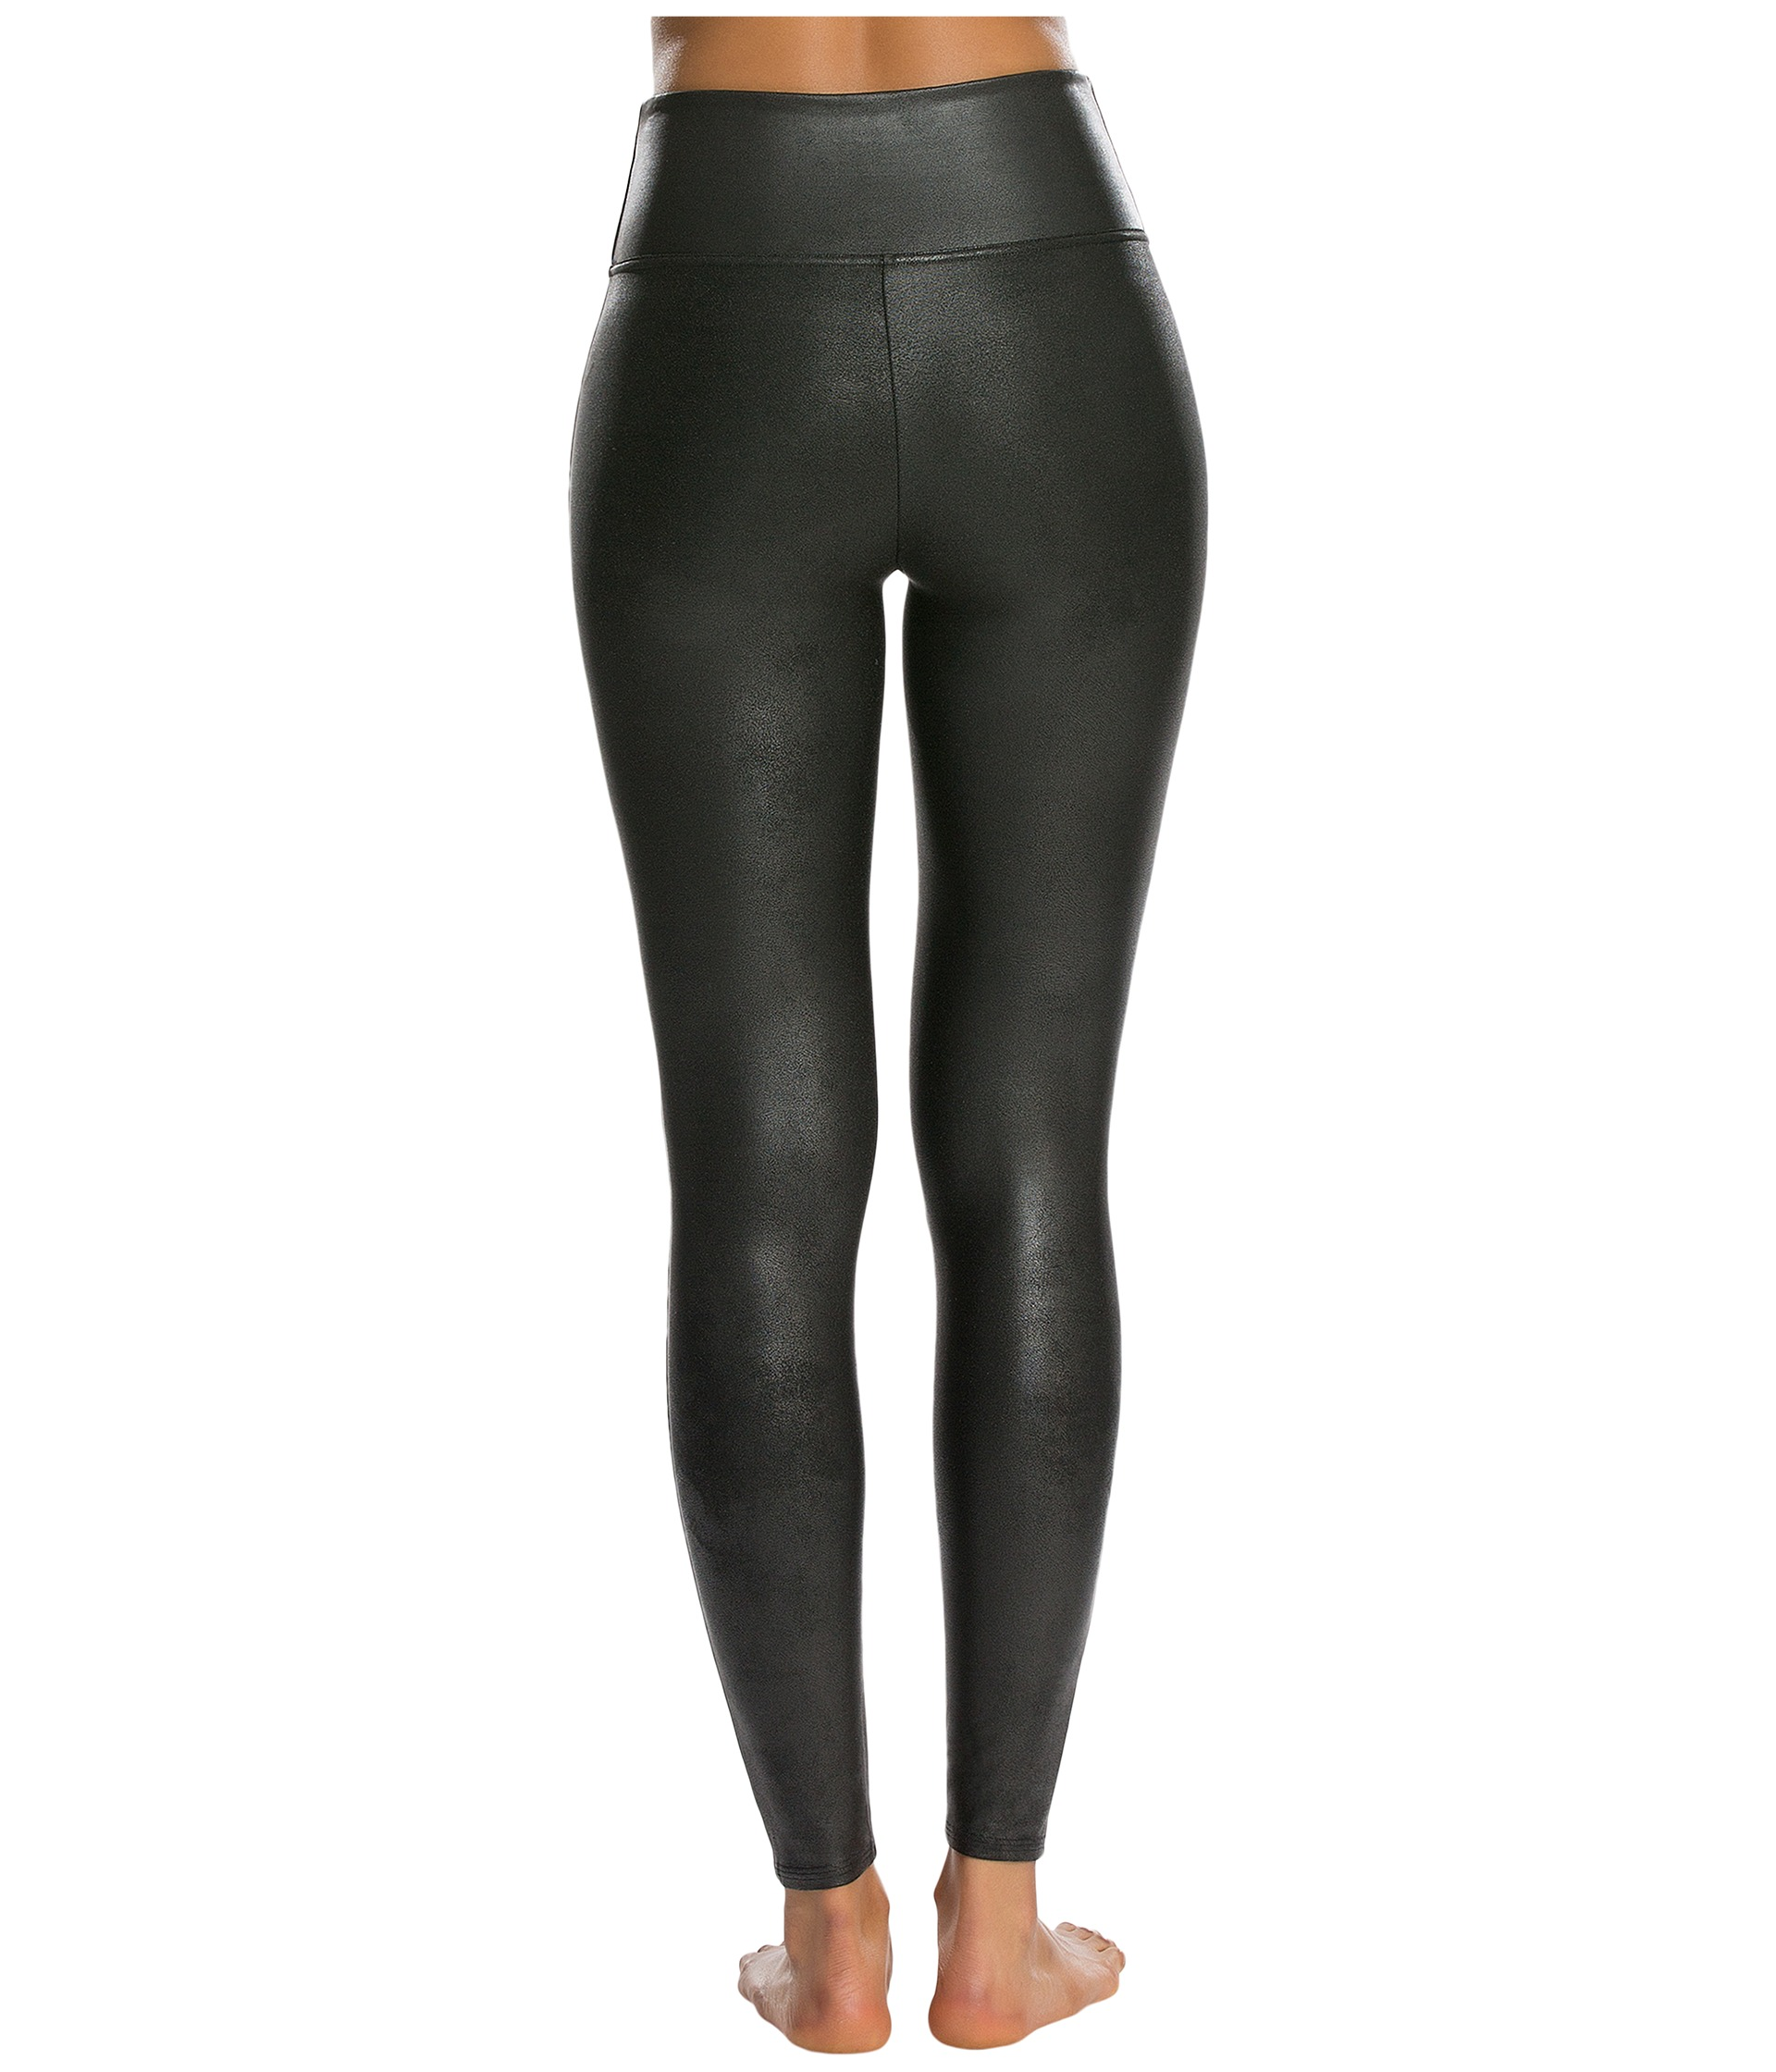 Spanx Ready-to-Wow!™ Faux Leather Leggings - Zappos.com Free ...